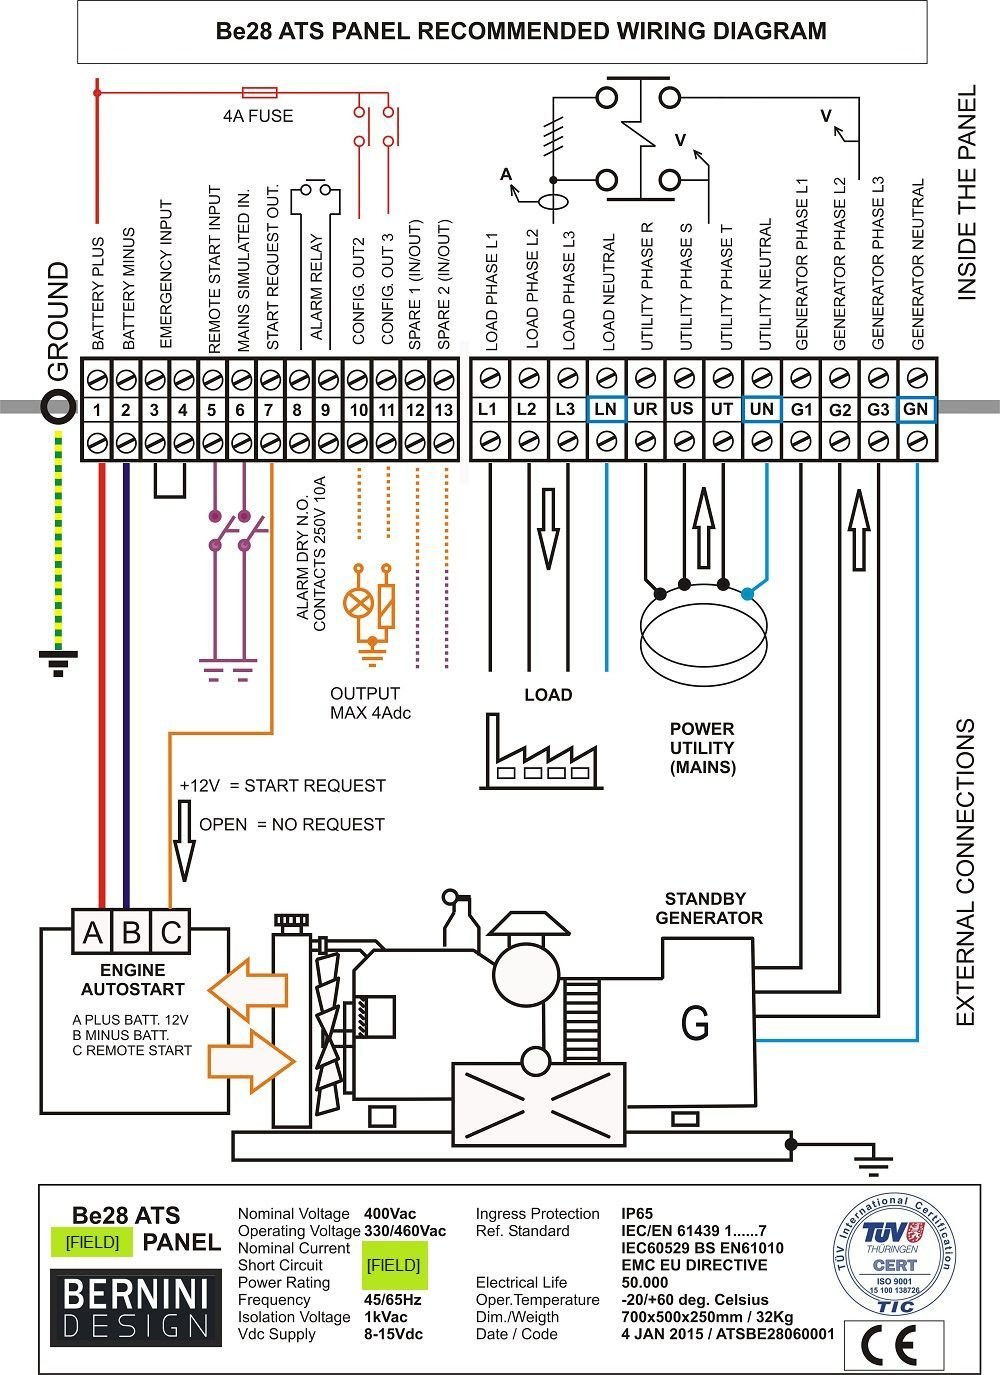 Generac Automatic Transfer Switch Wiring Diagram And Generator - Generac Transfer Switch Wiring Diagram